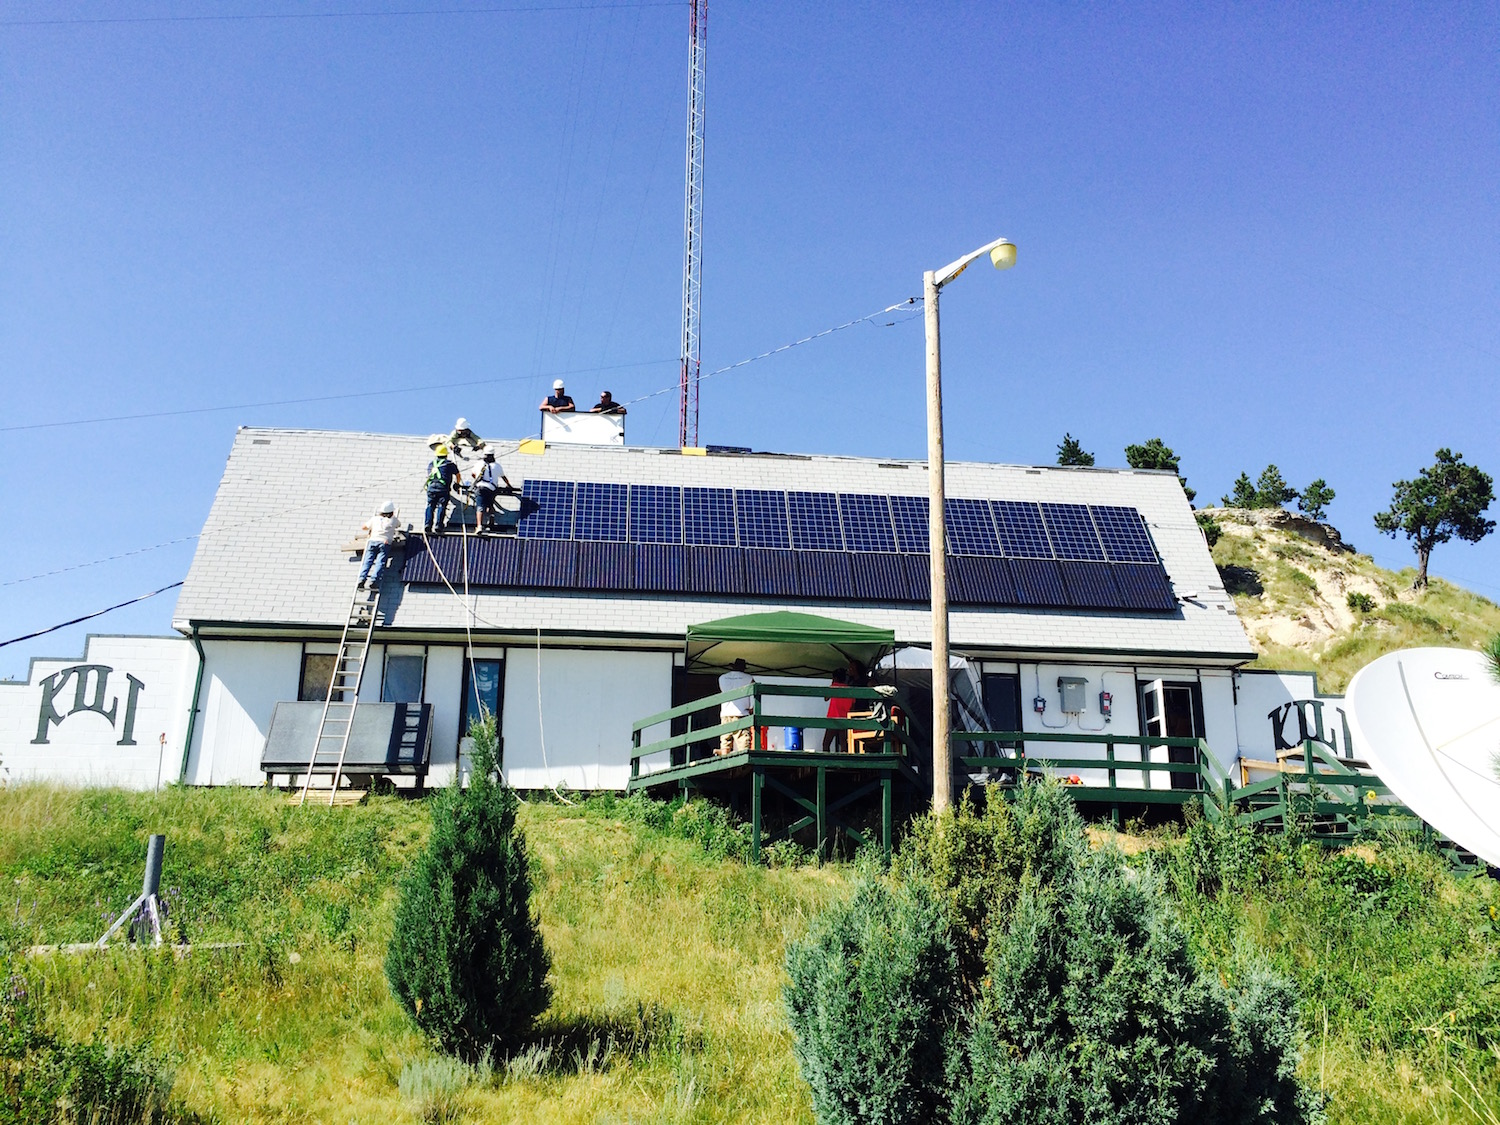 Lakota Country Times: Interest growing in solar at Pine Ridge